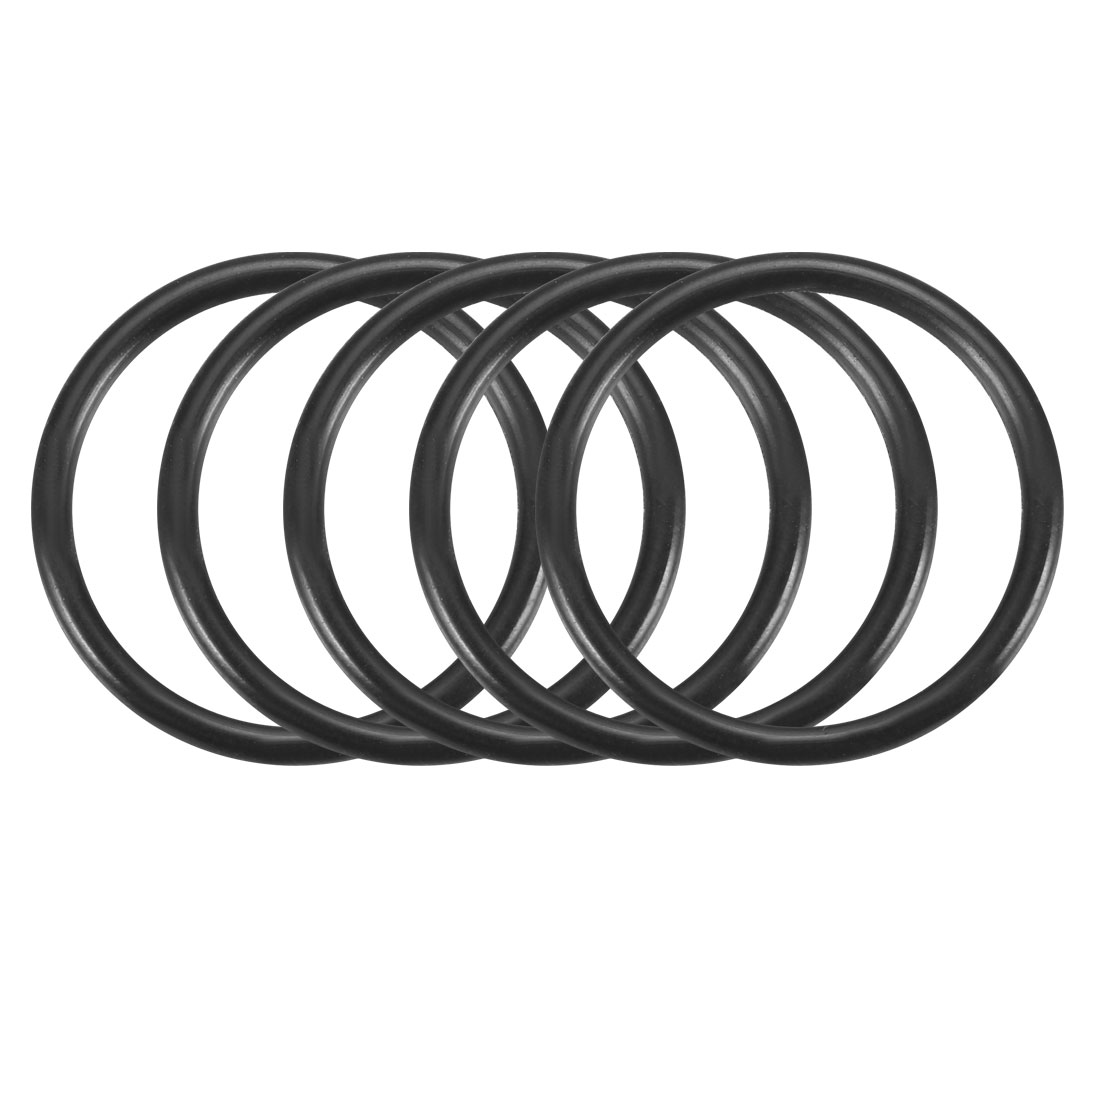 100Pcs 23mm x 1.9mm Black Flexible Nitrile Rubber O Ring Oil Seal Washer Grommets